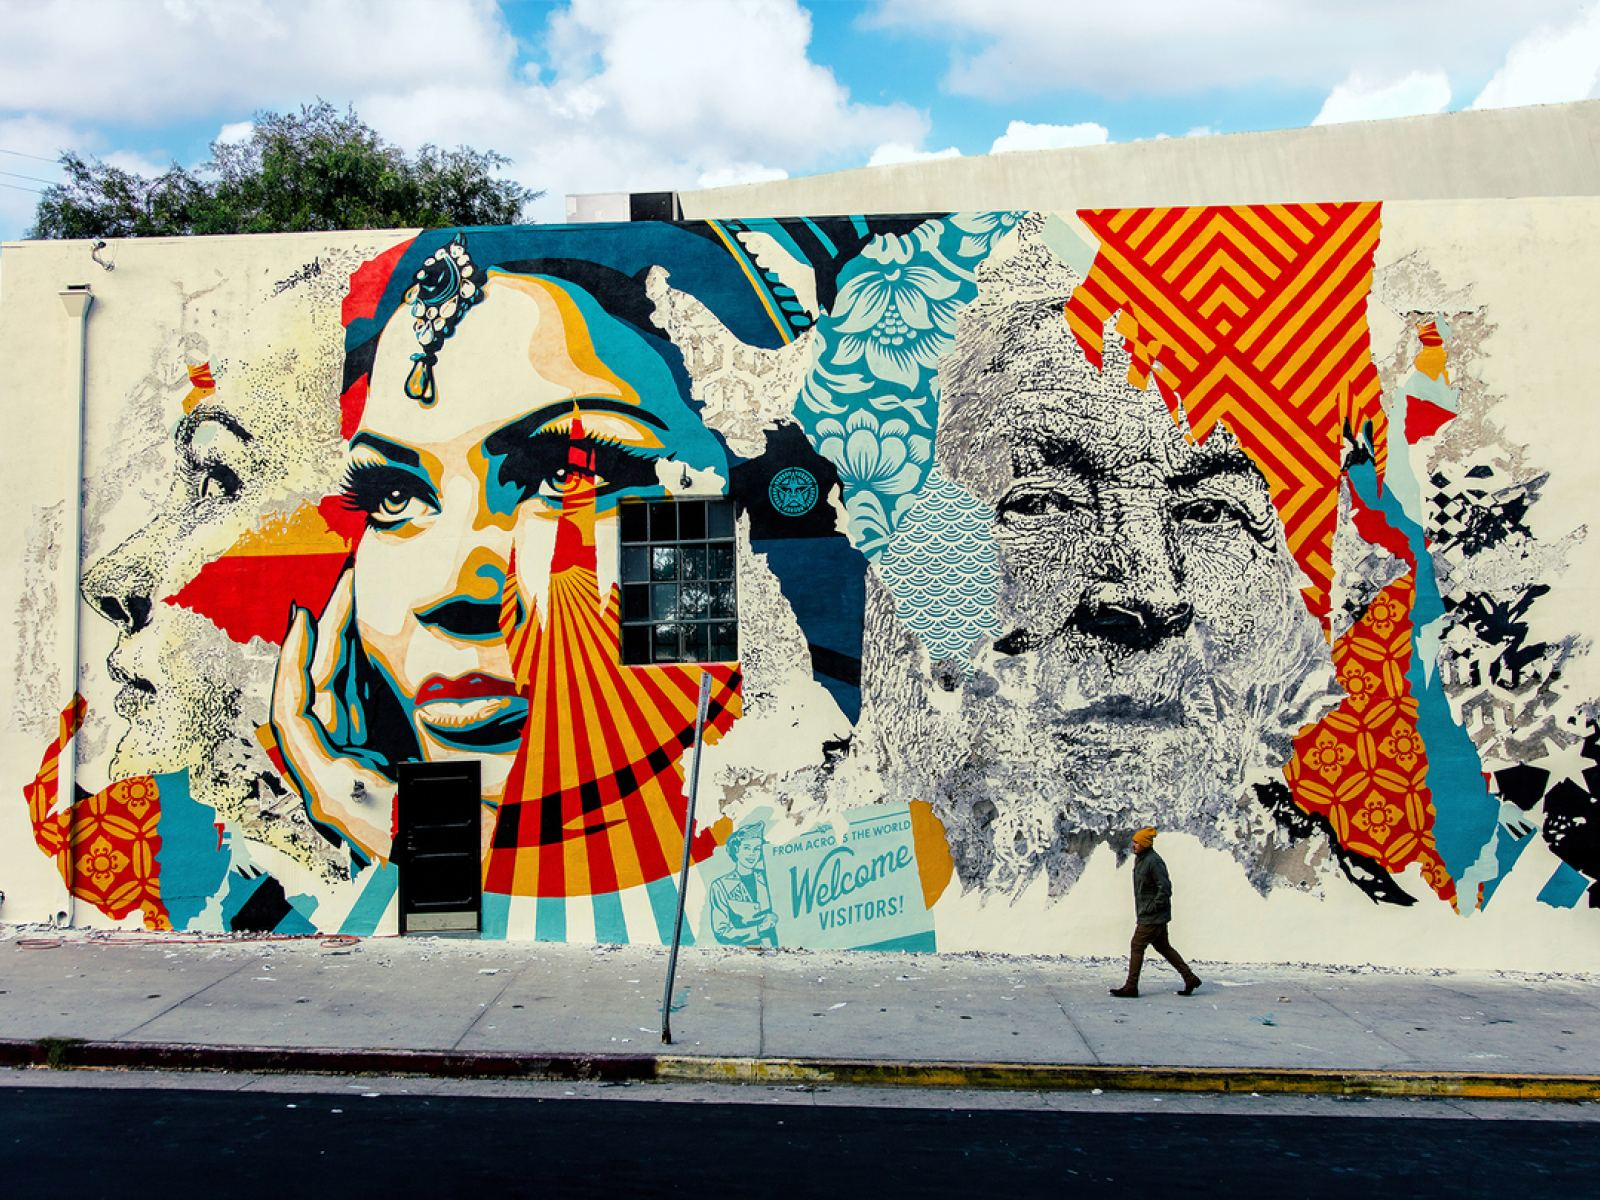 Vhils shepard fairey 2018 i photo jonathan furlong